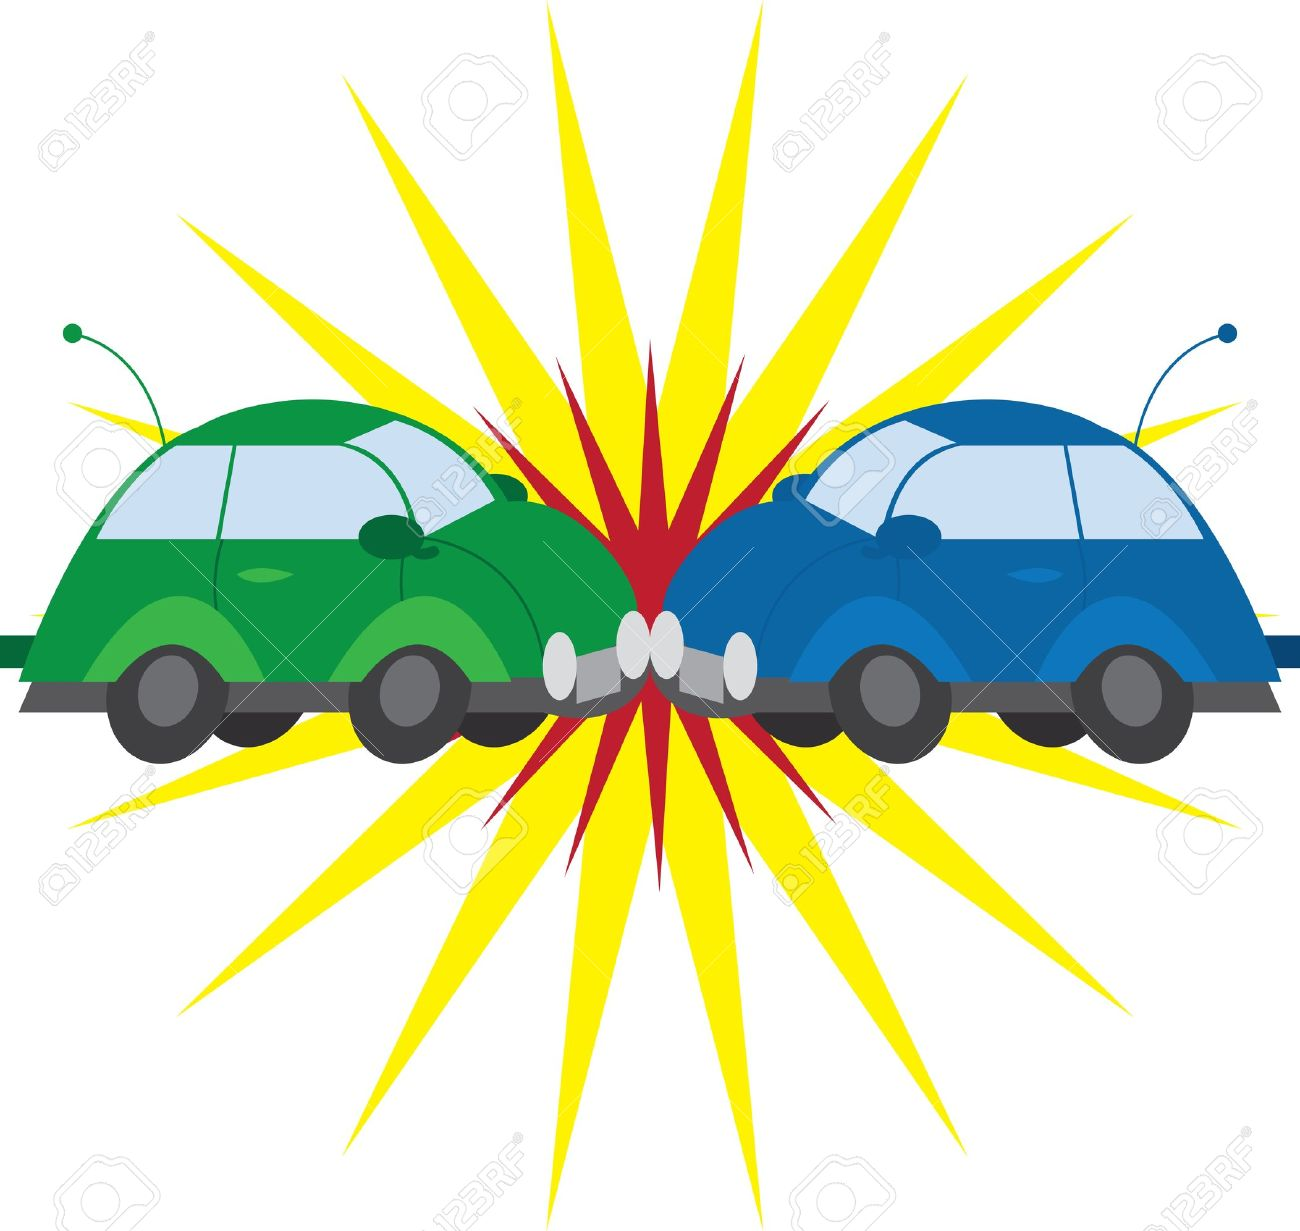 Two cars crashing with explosion - 12855397